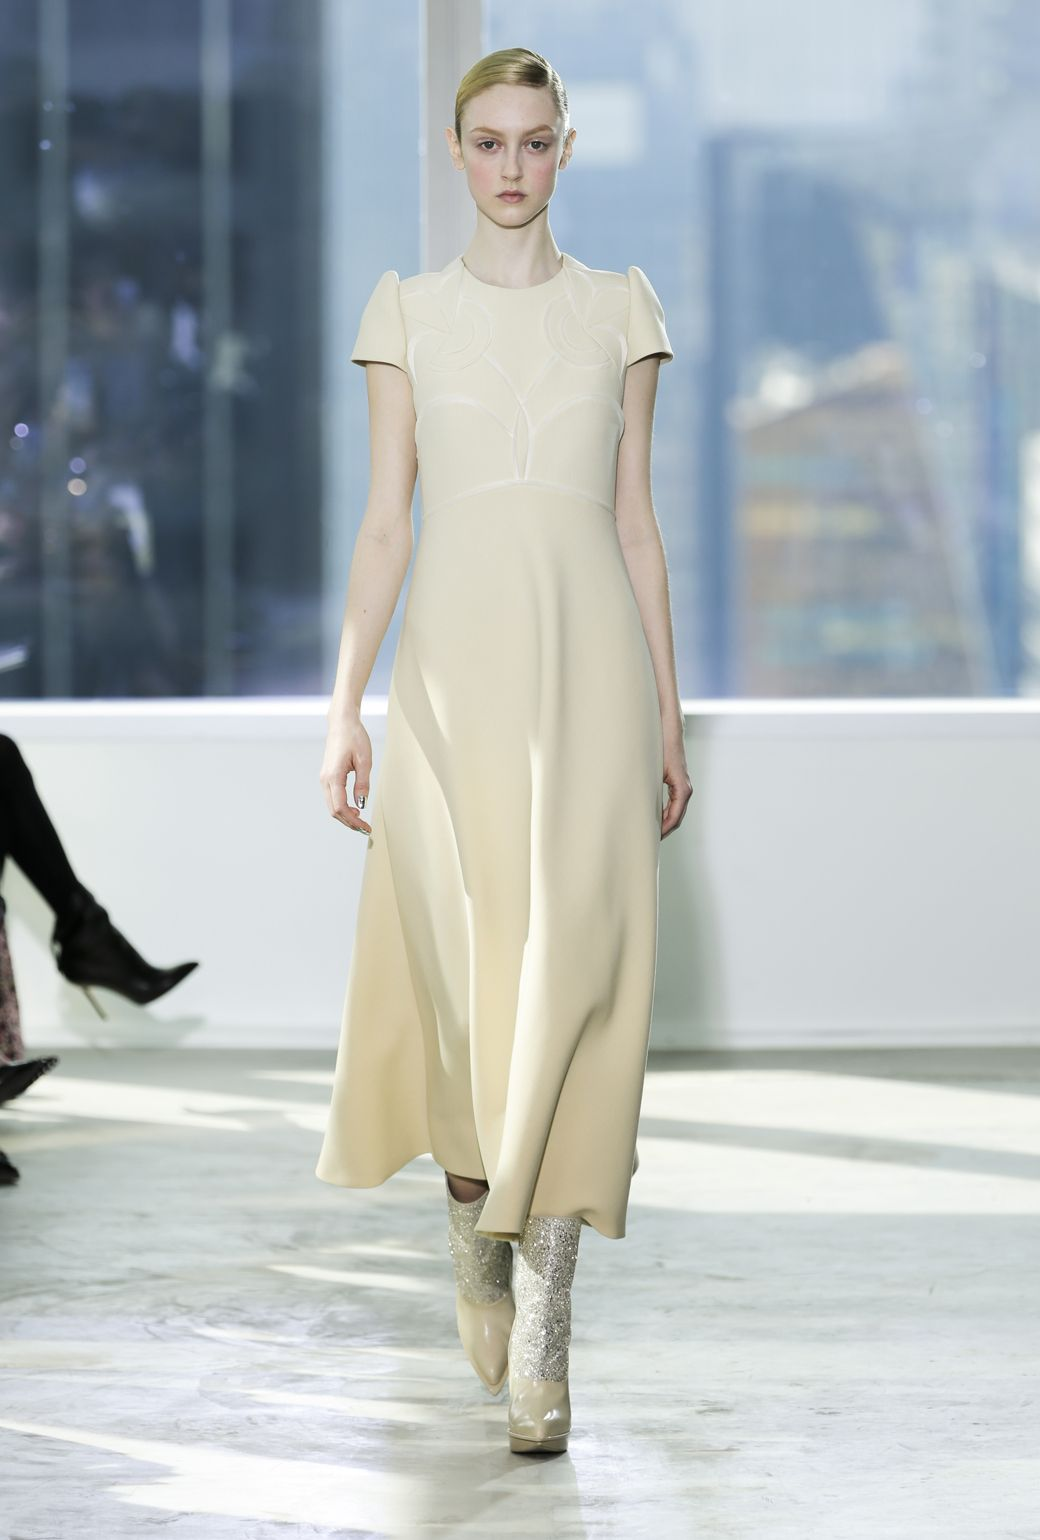 Show Review: Delpozo Fall 2014 exclusive photo